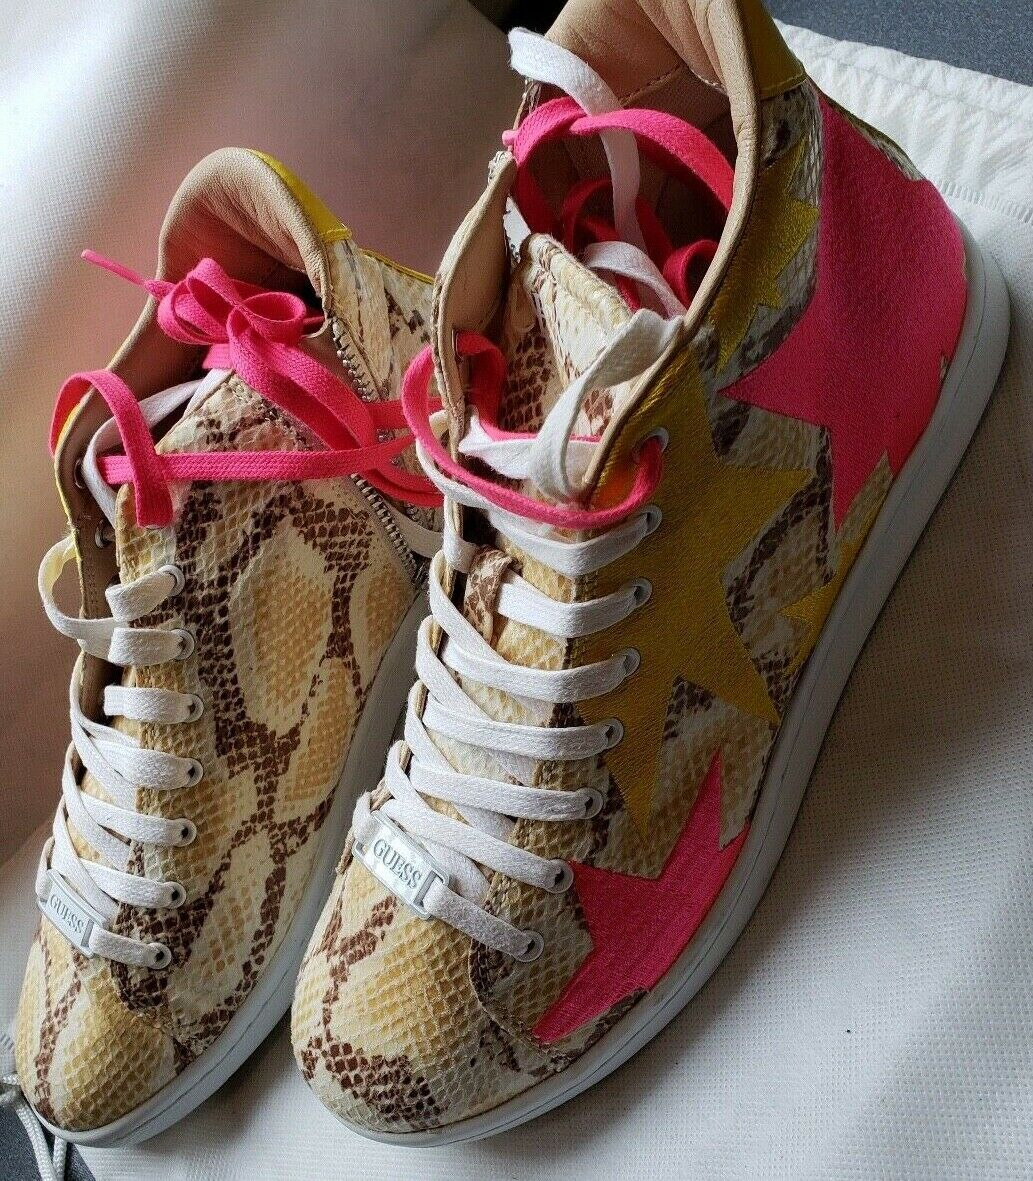 NEW Guess Python Print giallo giallo giallo and rosa Stars High Top scarpe da ginnastica Dimensione EU39 US9 cf4e4f